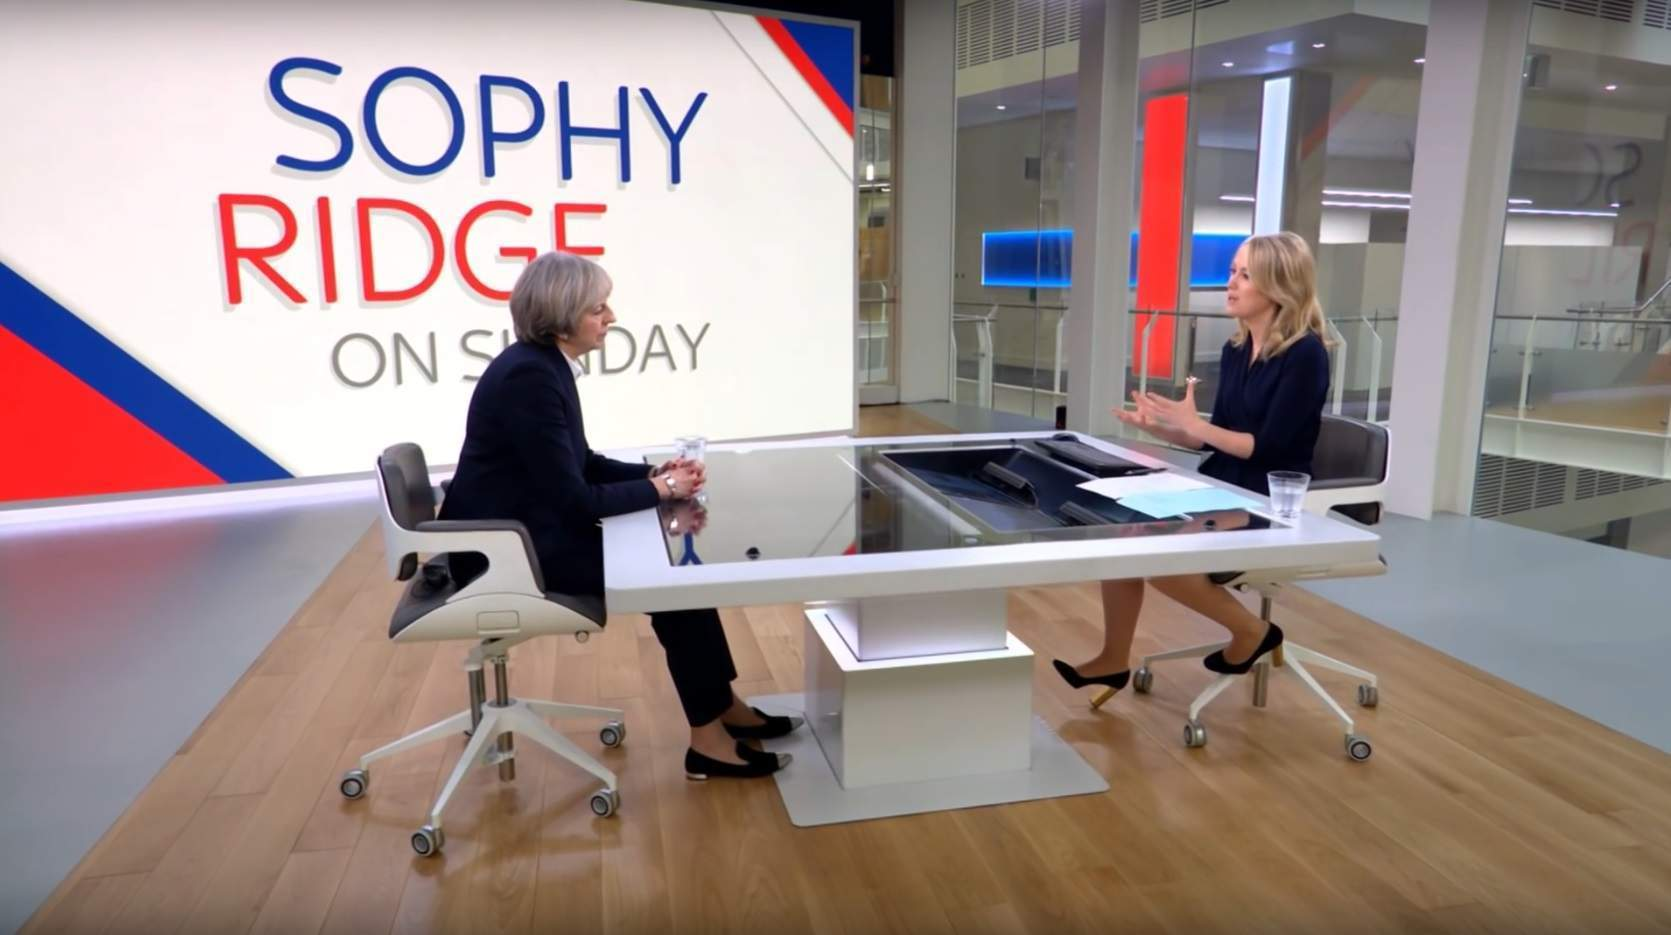 In her first interview of 2017, I pressed the Prime Minister for Brexit clarity